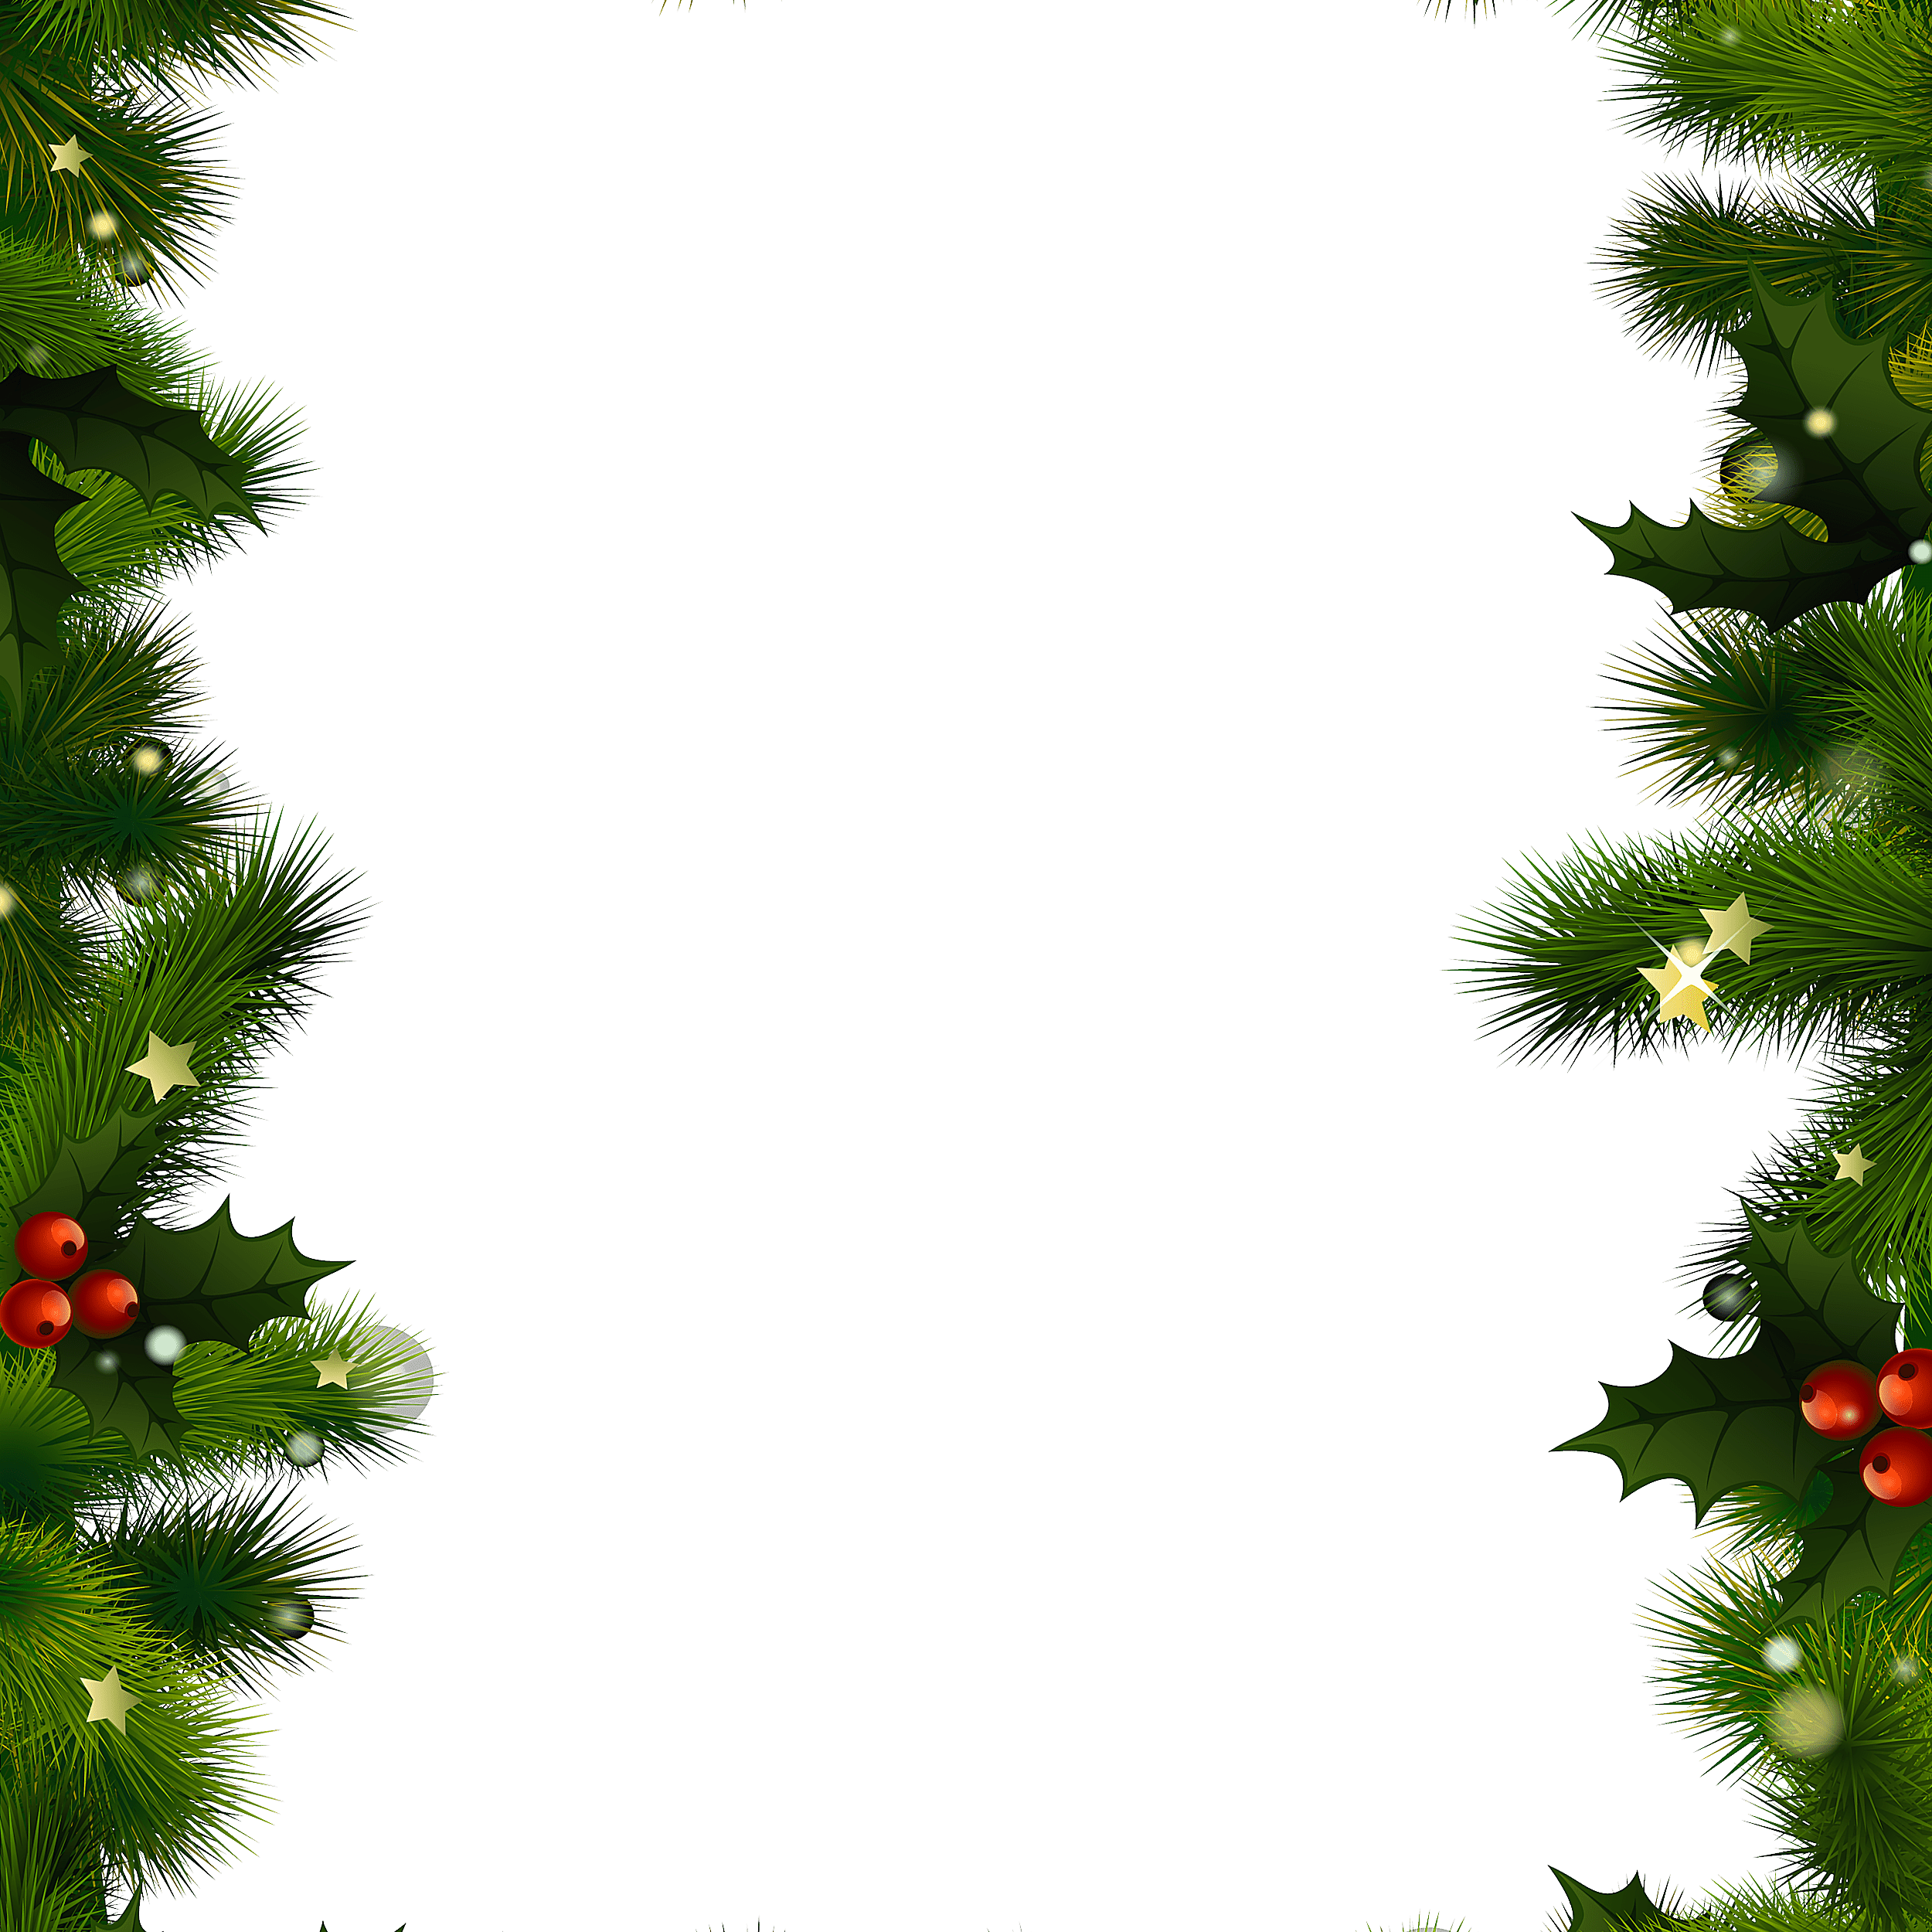 Free and frames a. Christmas borders .png graphic royalty free stock